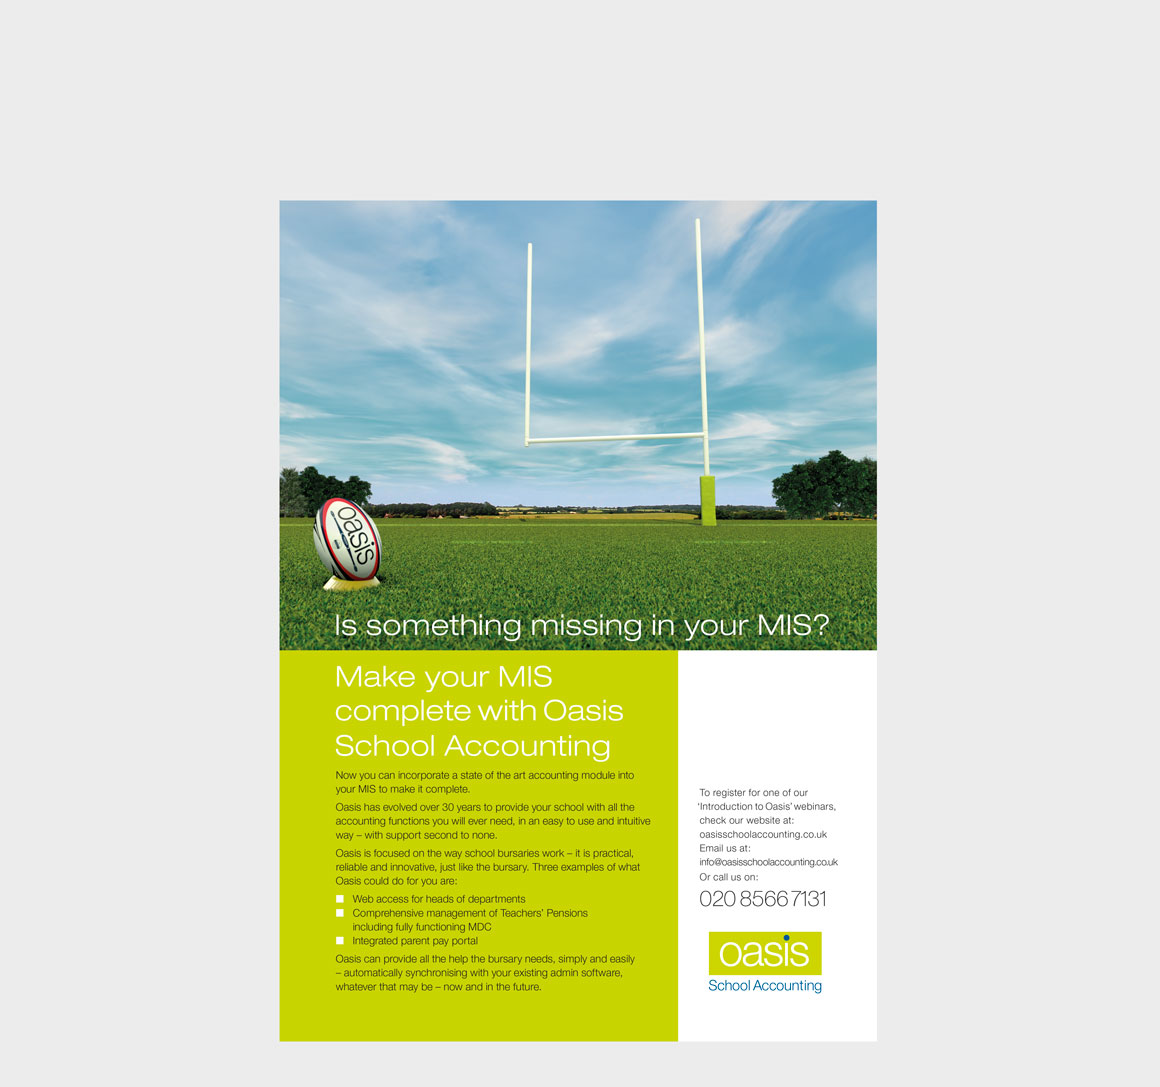 Press ad for Oasis School Accounting showing impossible rugby posts designed by advertising agency Greenwood&Bell